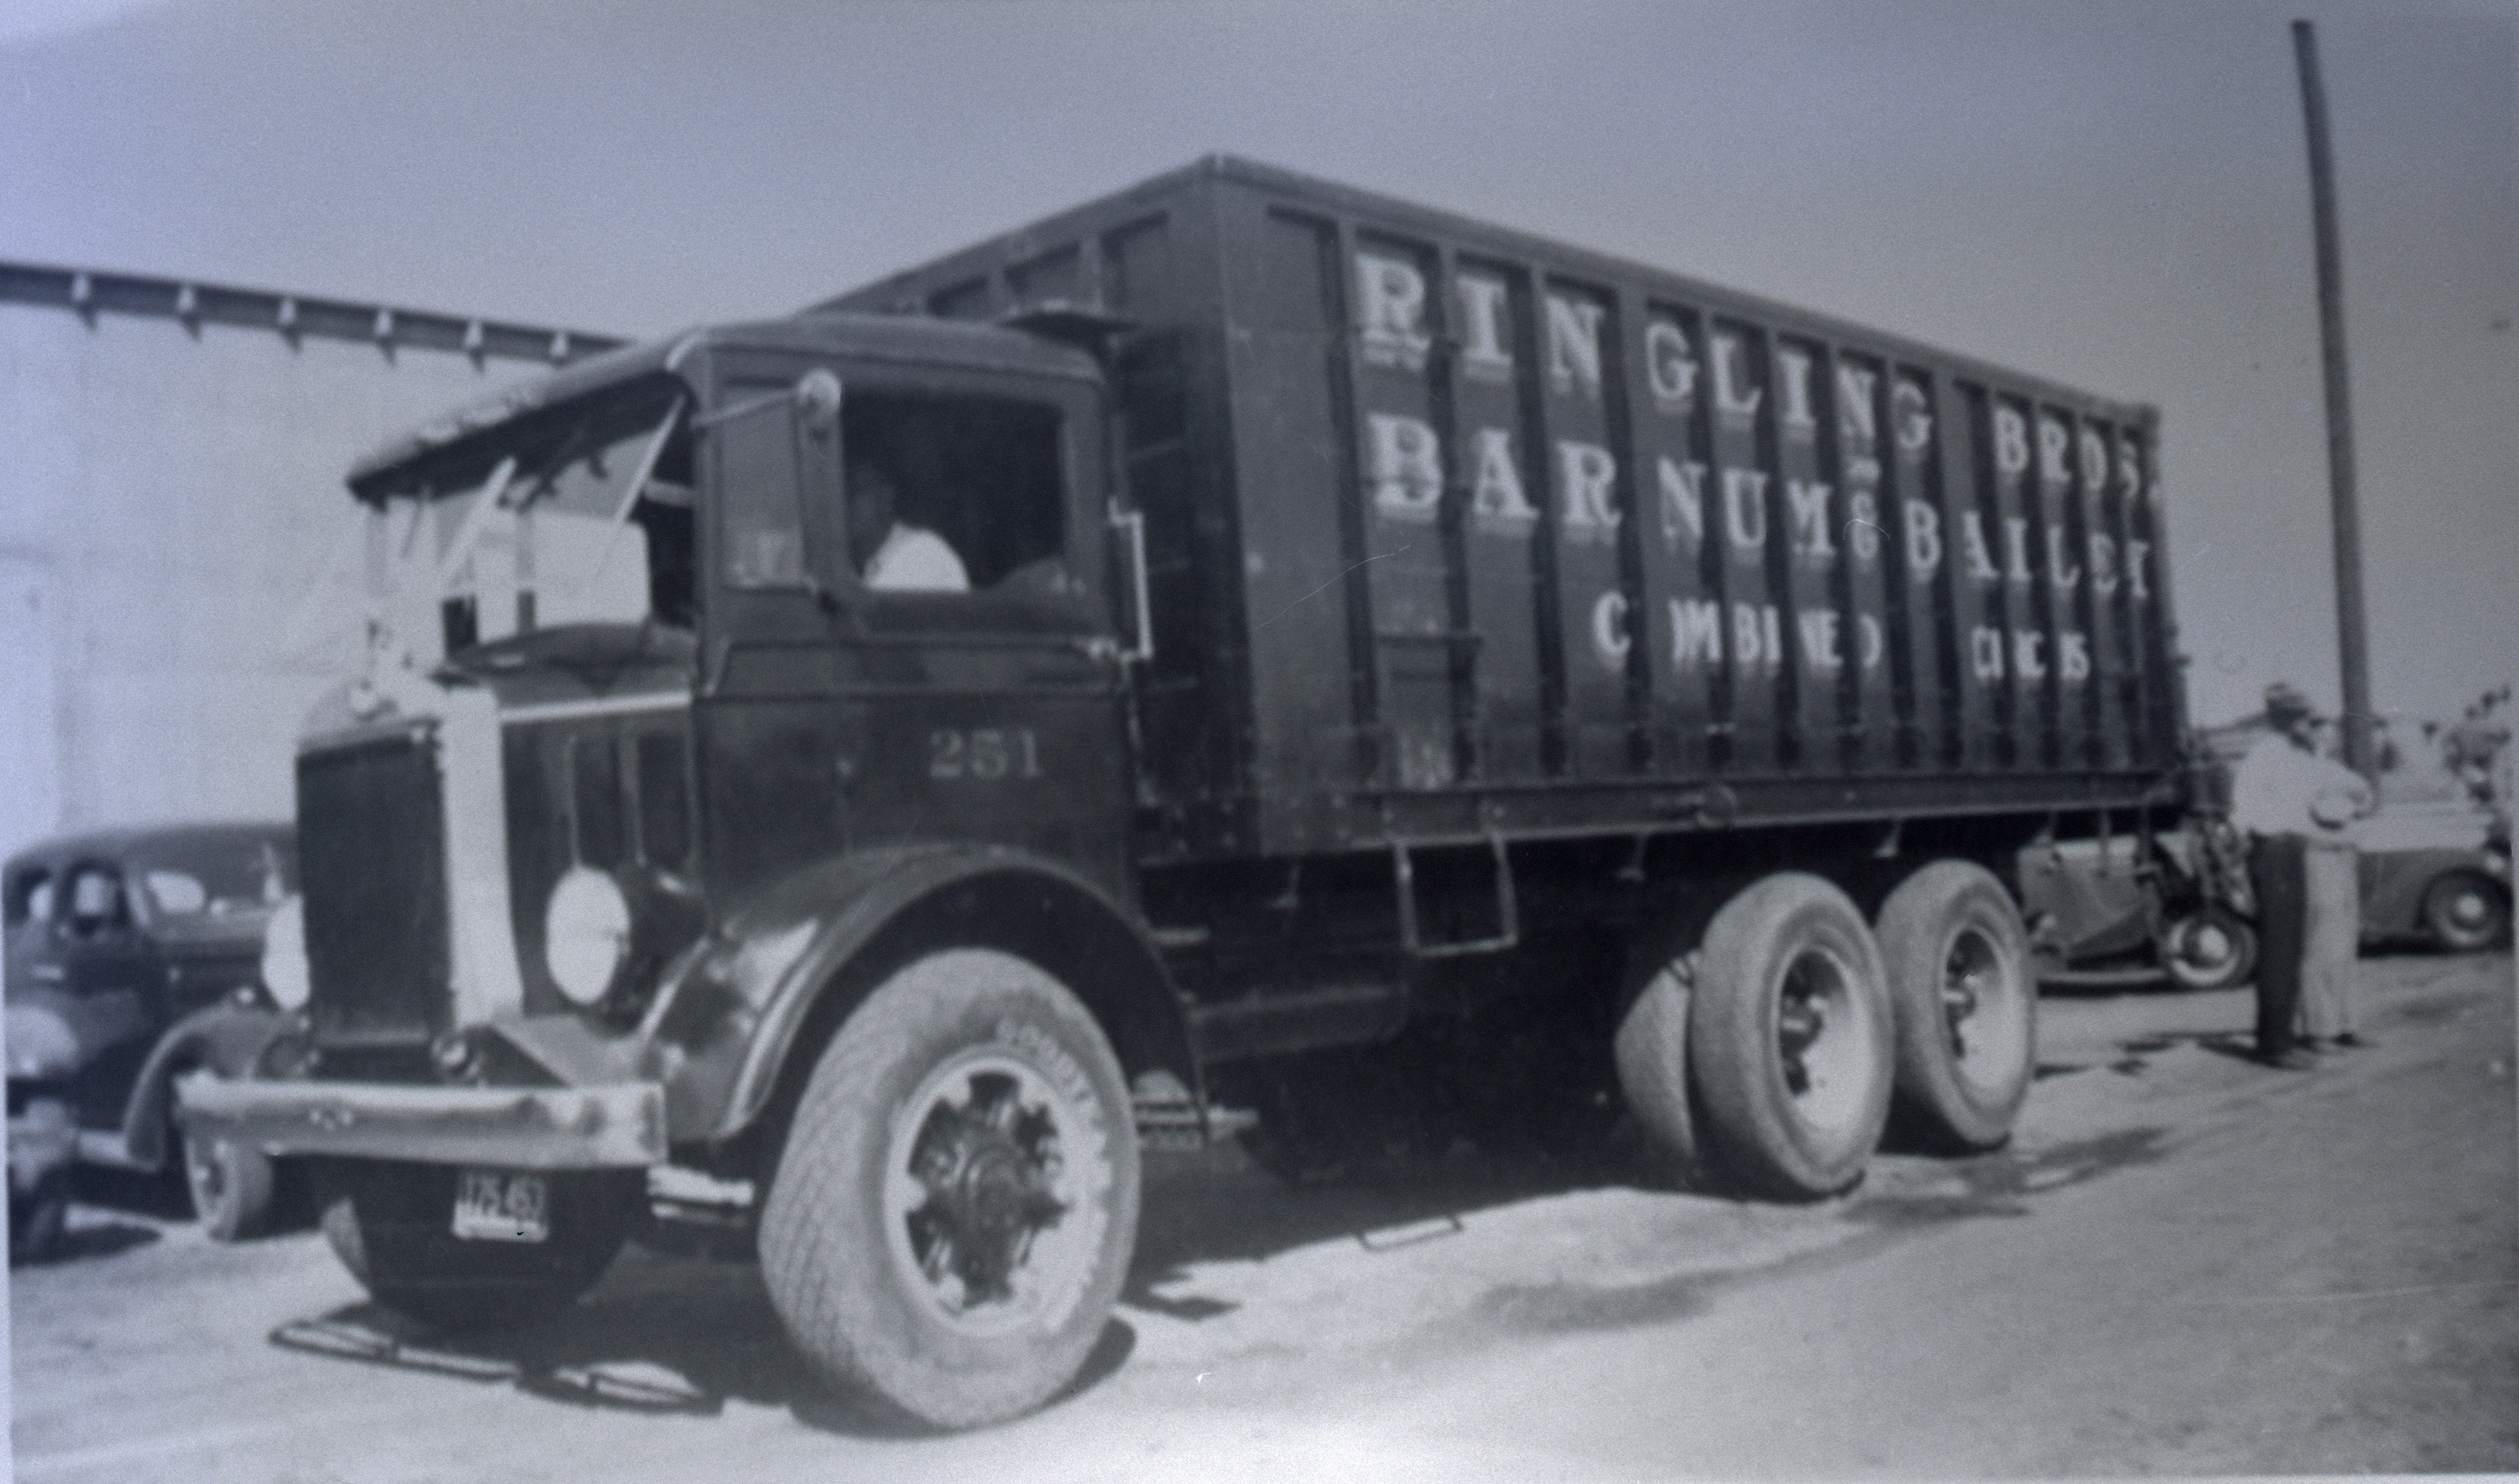 Ringling Bros Barnum Bailey 1936 CanvasTRUCK WORKING Posted 2 of 13 R.B.B&B